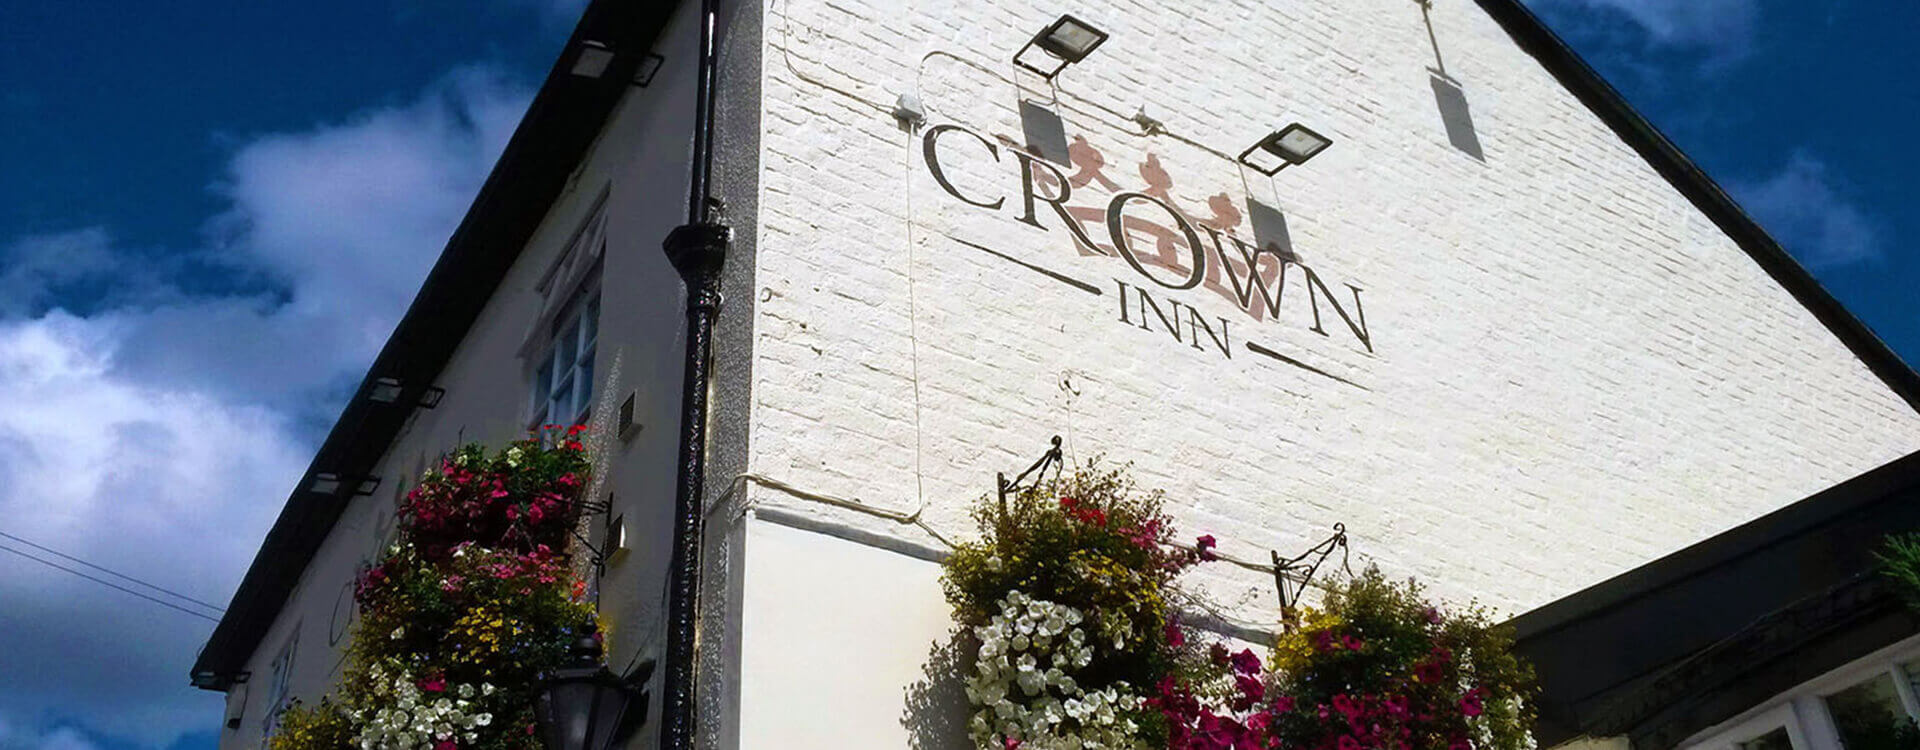 crown_inn_widnes_pub_food_live_music_sunday_lunch_introduction-4